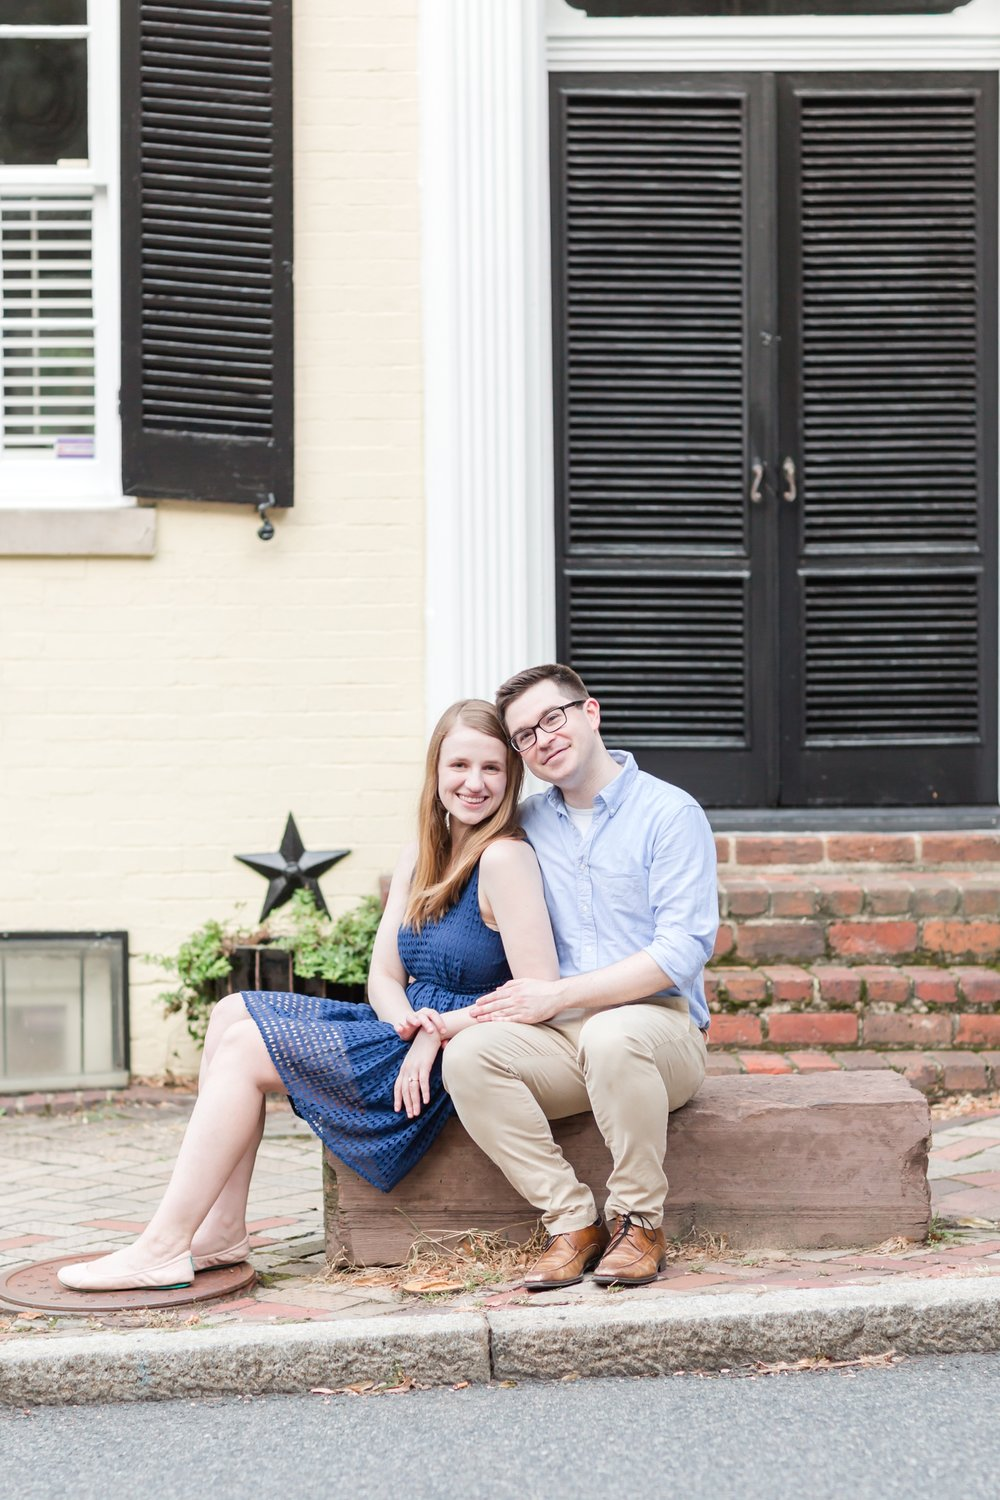 Lindy & Chris Engagement-137_virginia-engagement-photographer-old-town-alexandria-engagement-anna-grace-photography-photo.jpg